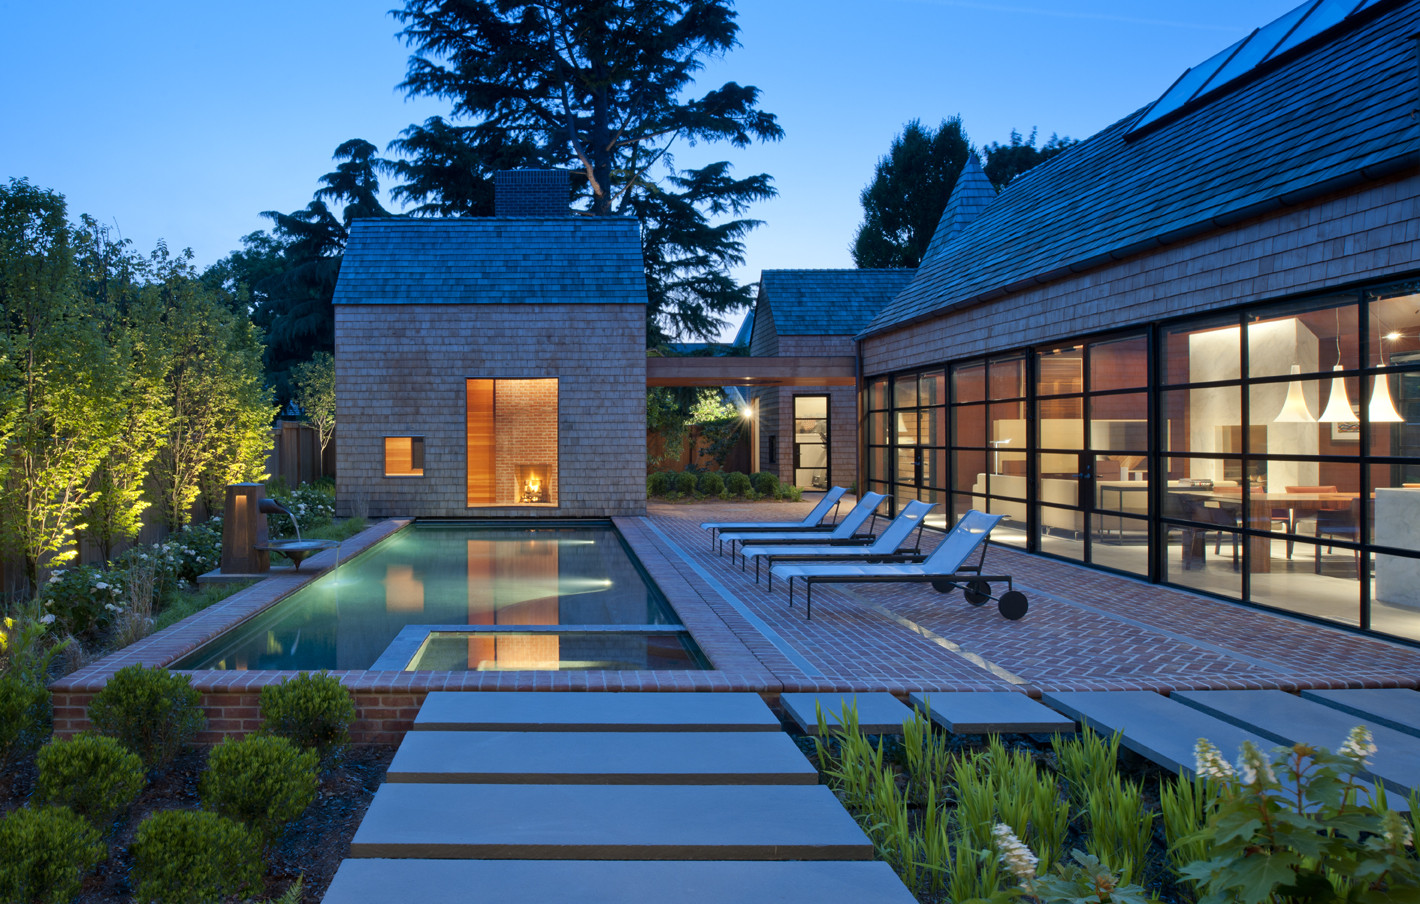 308 mulberry by robert m gurney architect in lewes usa for Home by m